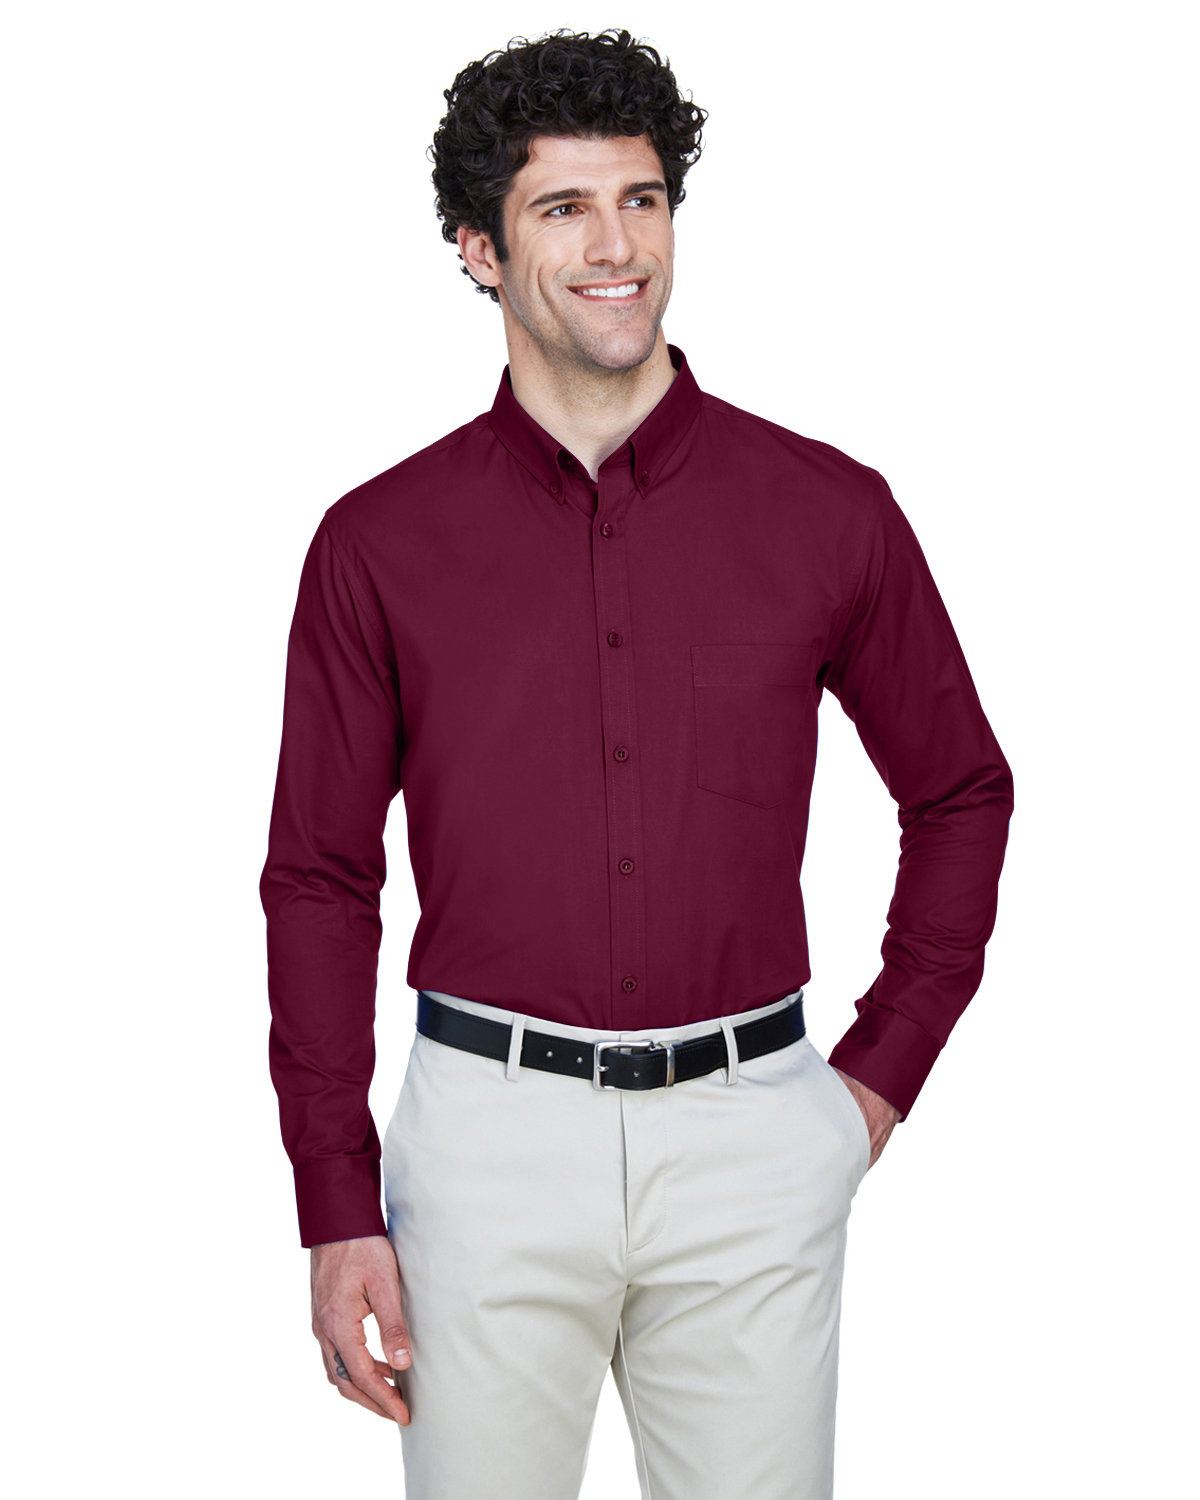 Core 365 Men's Operate Long-Sleeve Twill Shirt BURGUNDY